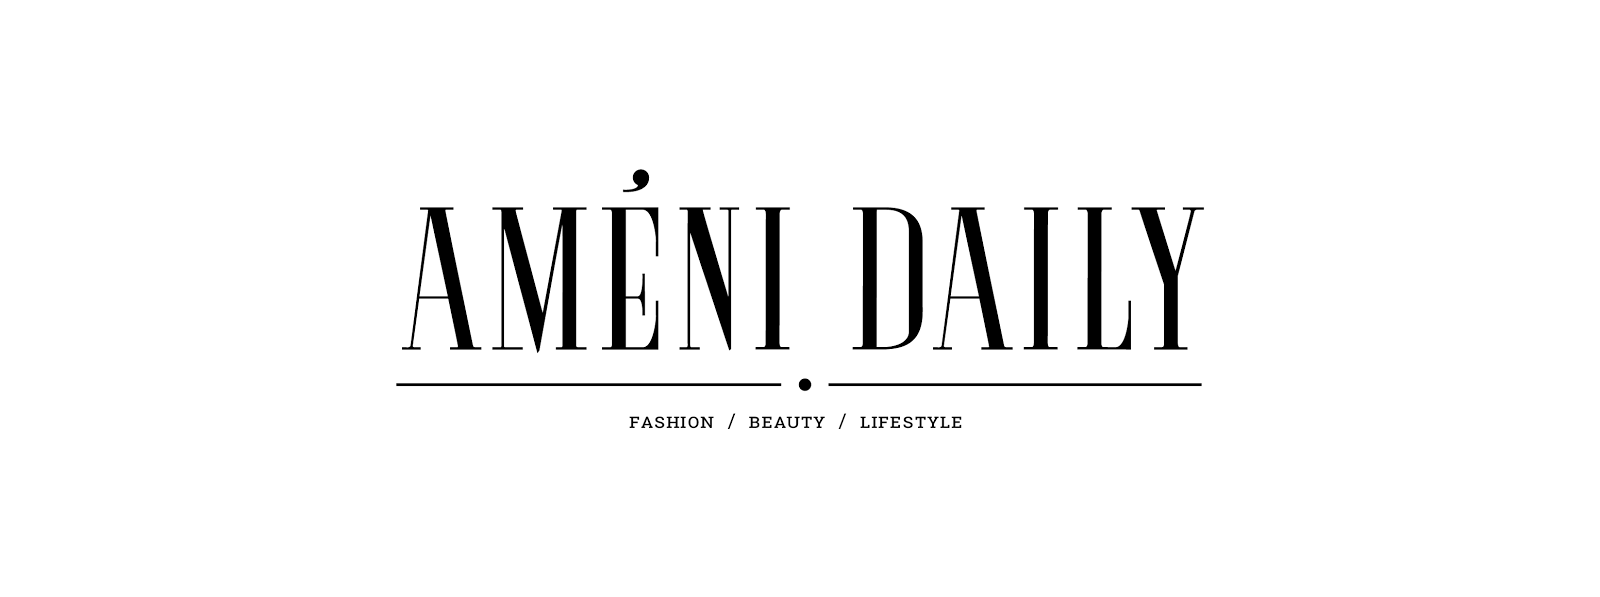 Ameni Daily - Blog Mode Lyon Paris